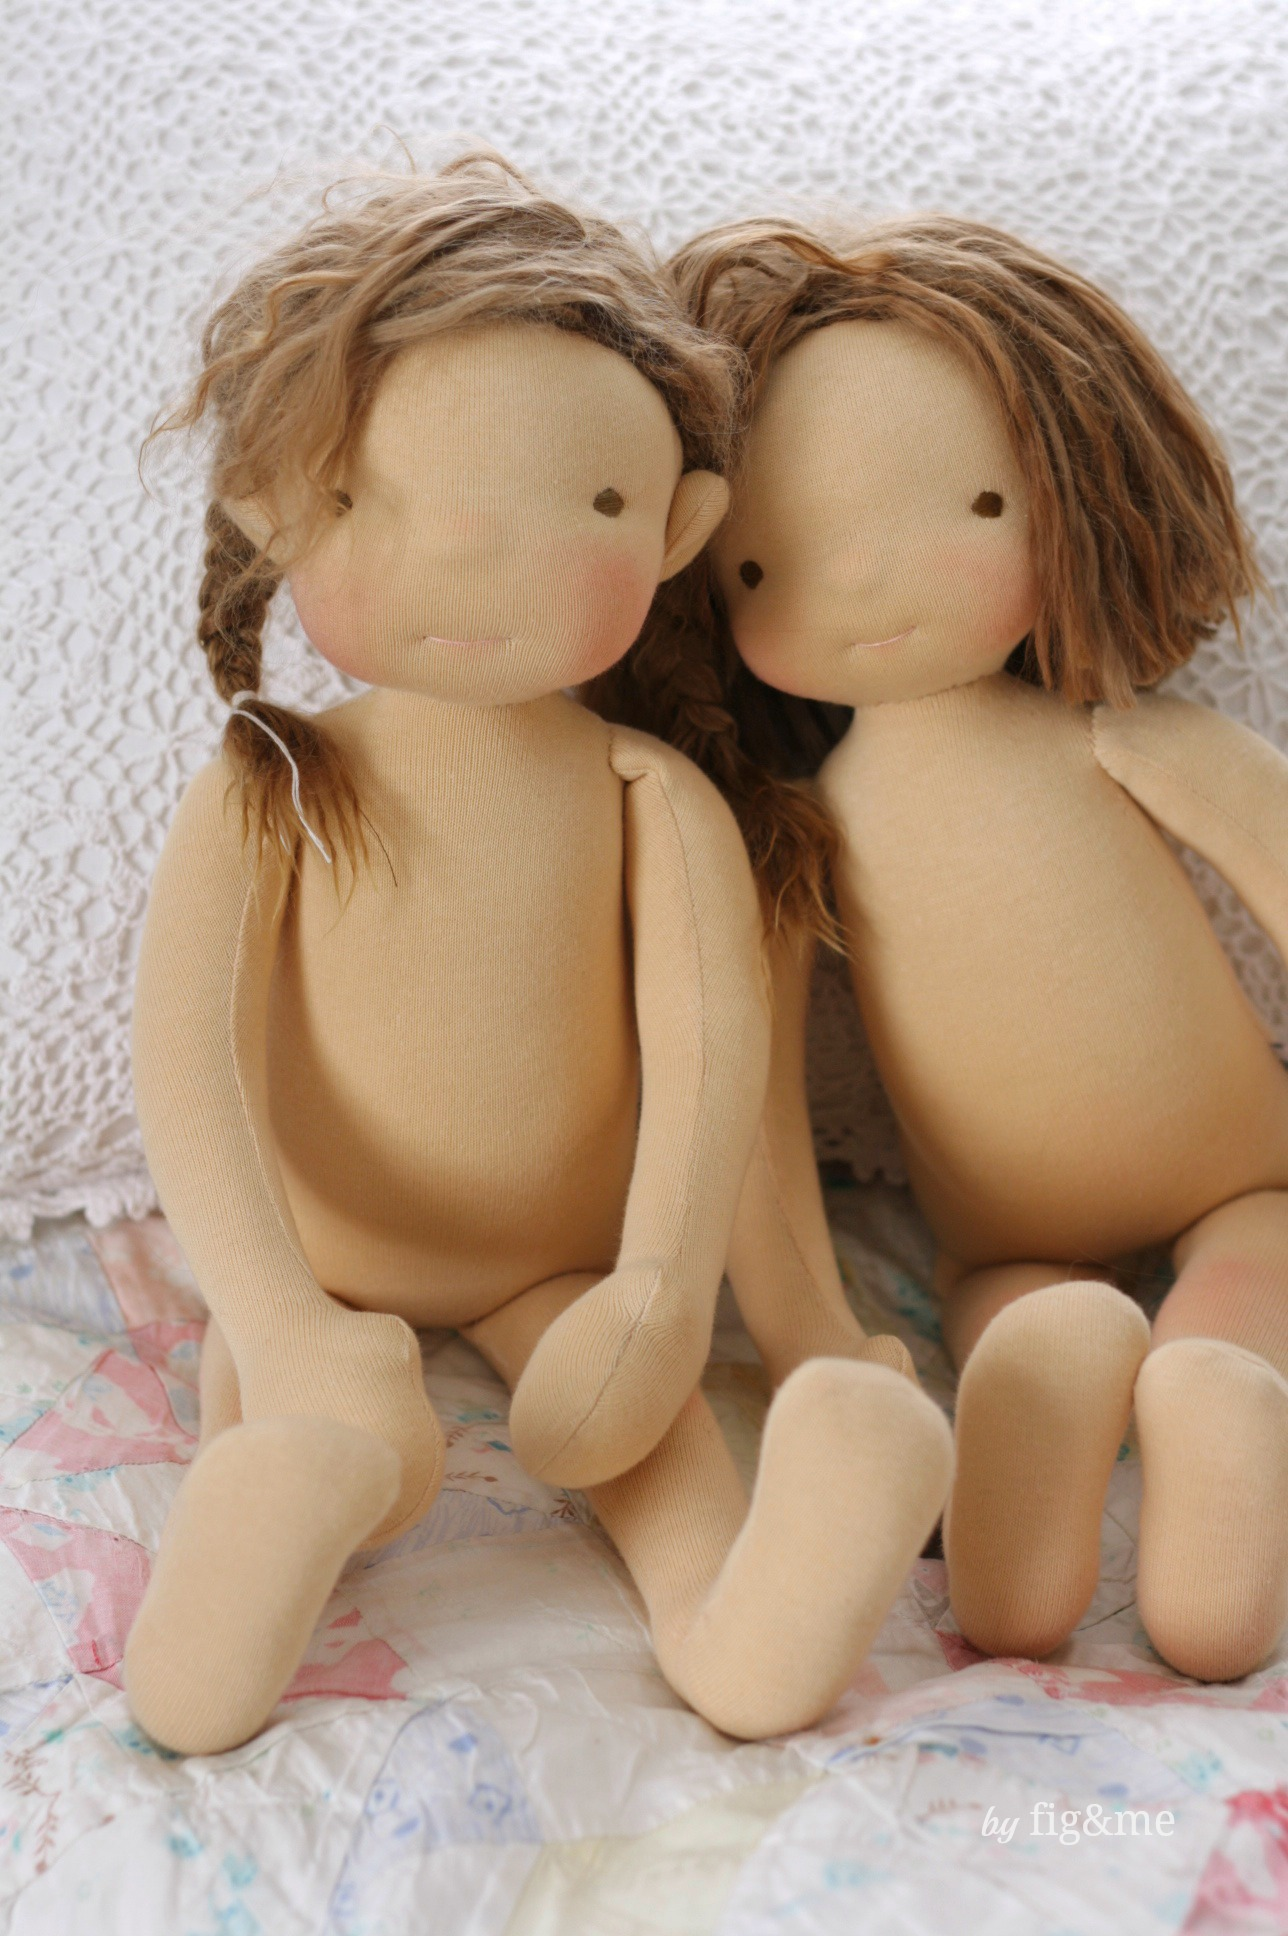 Figlette sisters, by Fig&me.